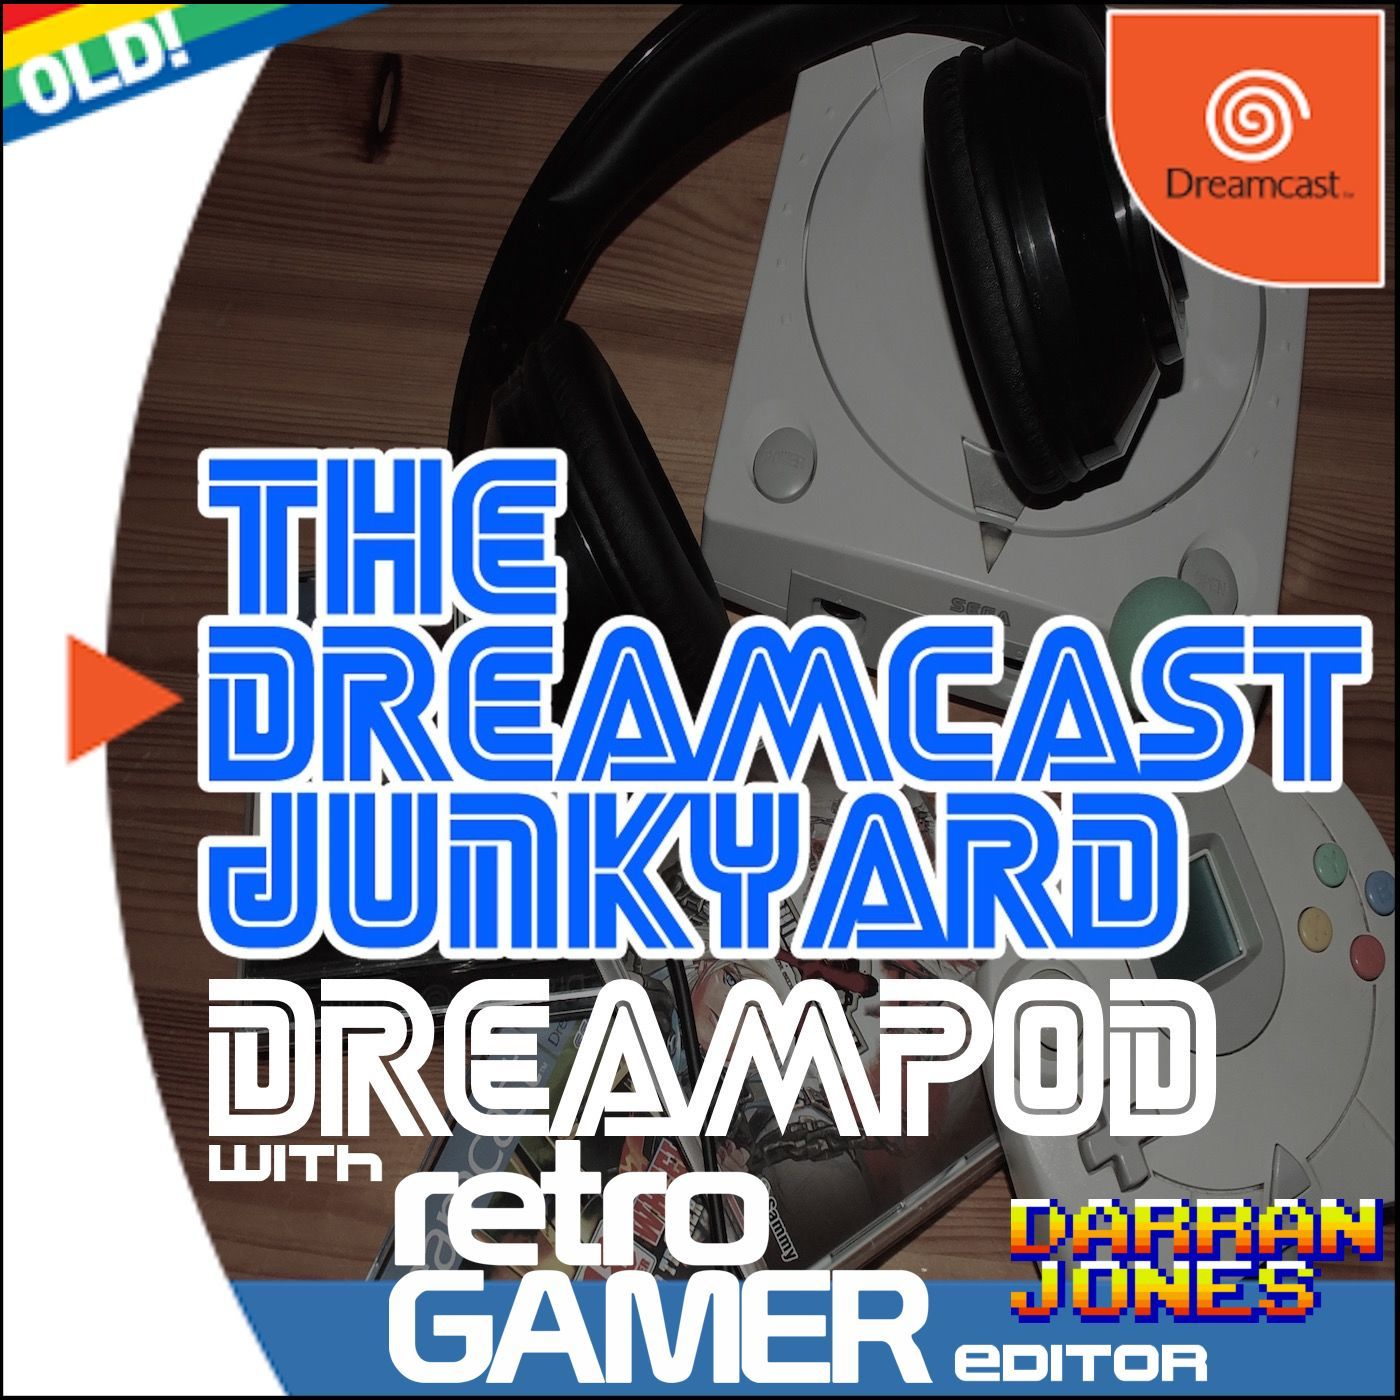 The Dreamcast Junkyard DreamPod - Episode 54: Featuring Retro Gamer Editor Darran Jones